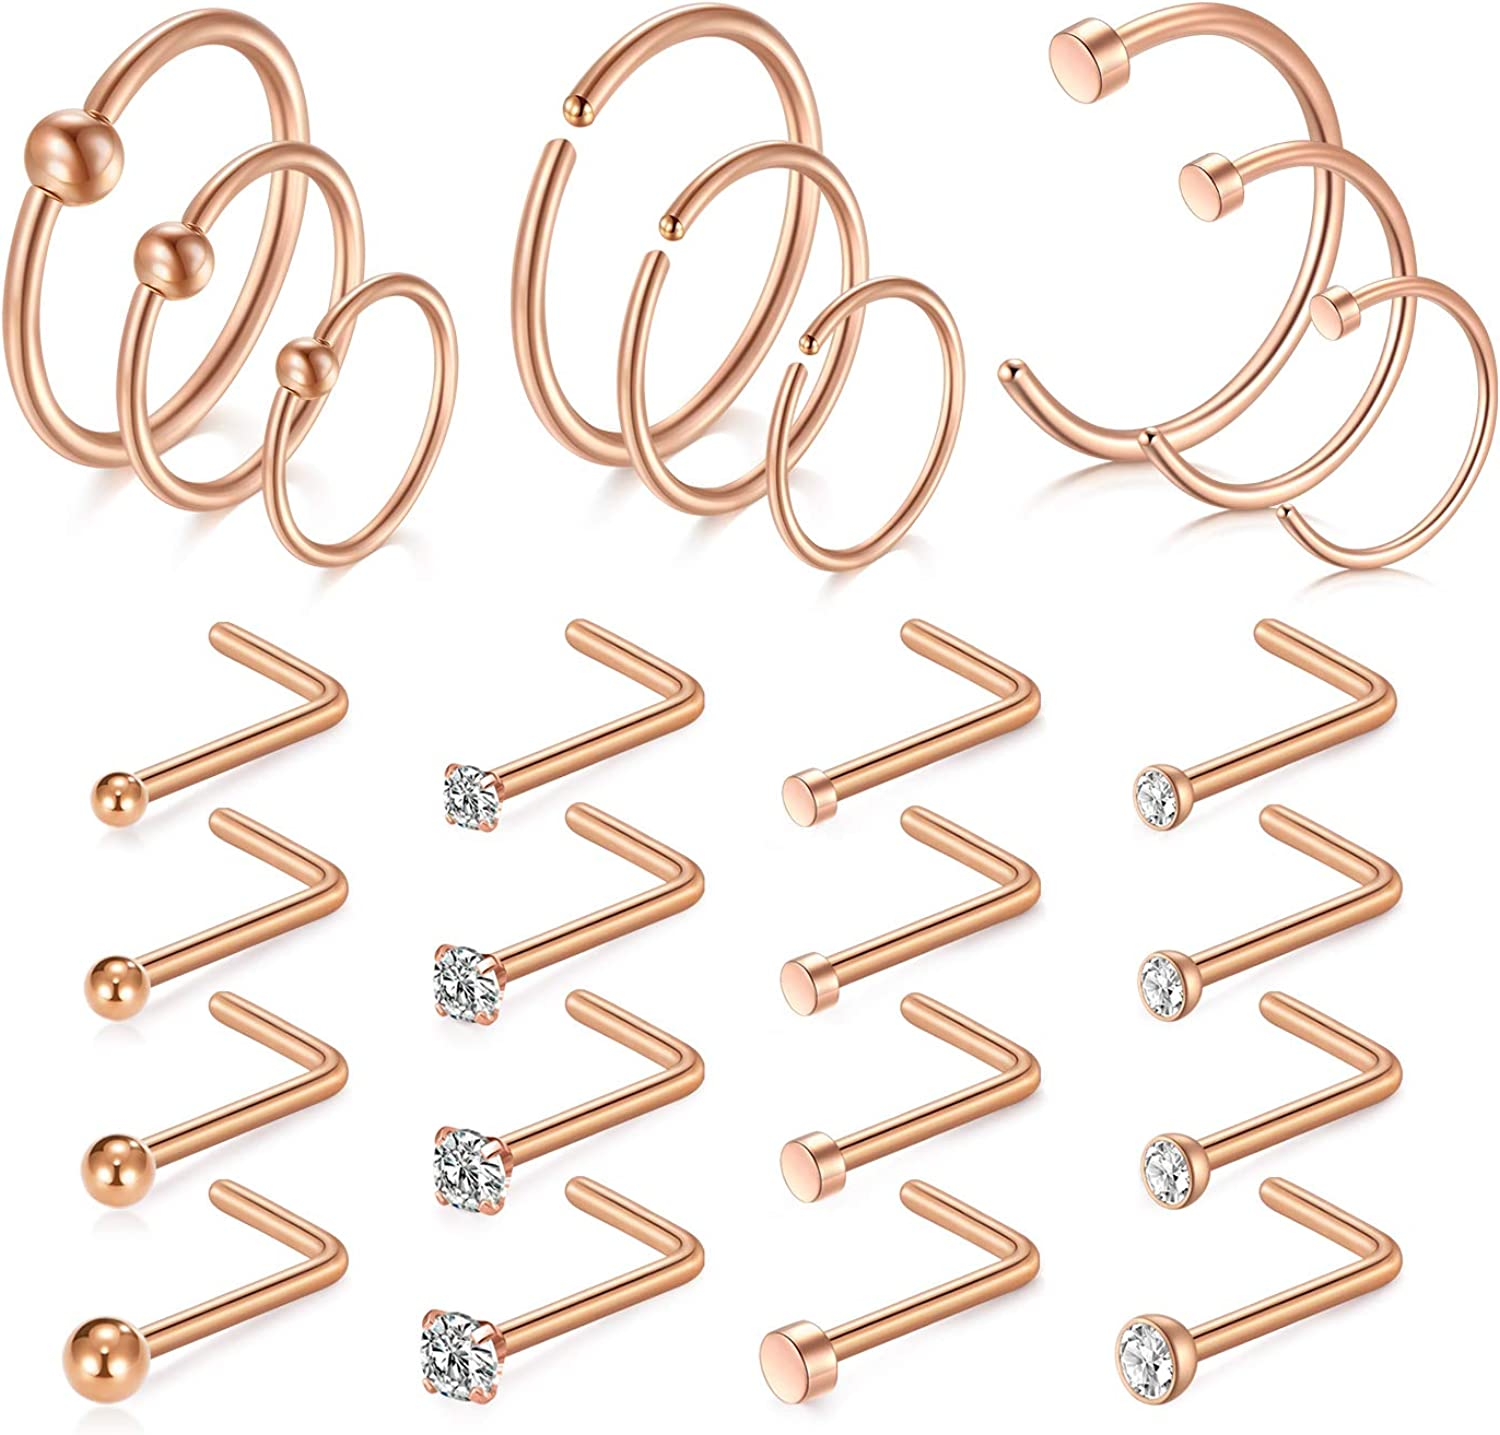 Incaton 25pcs 18G Nose Rings Ho Steel Stainless Albuquerque New product!! Mall Studs